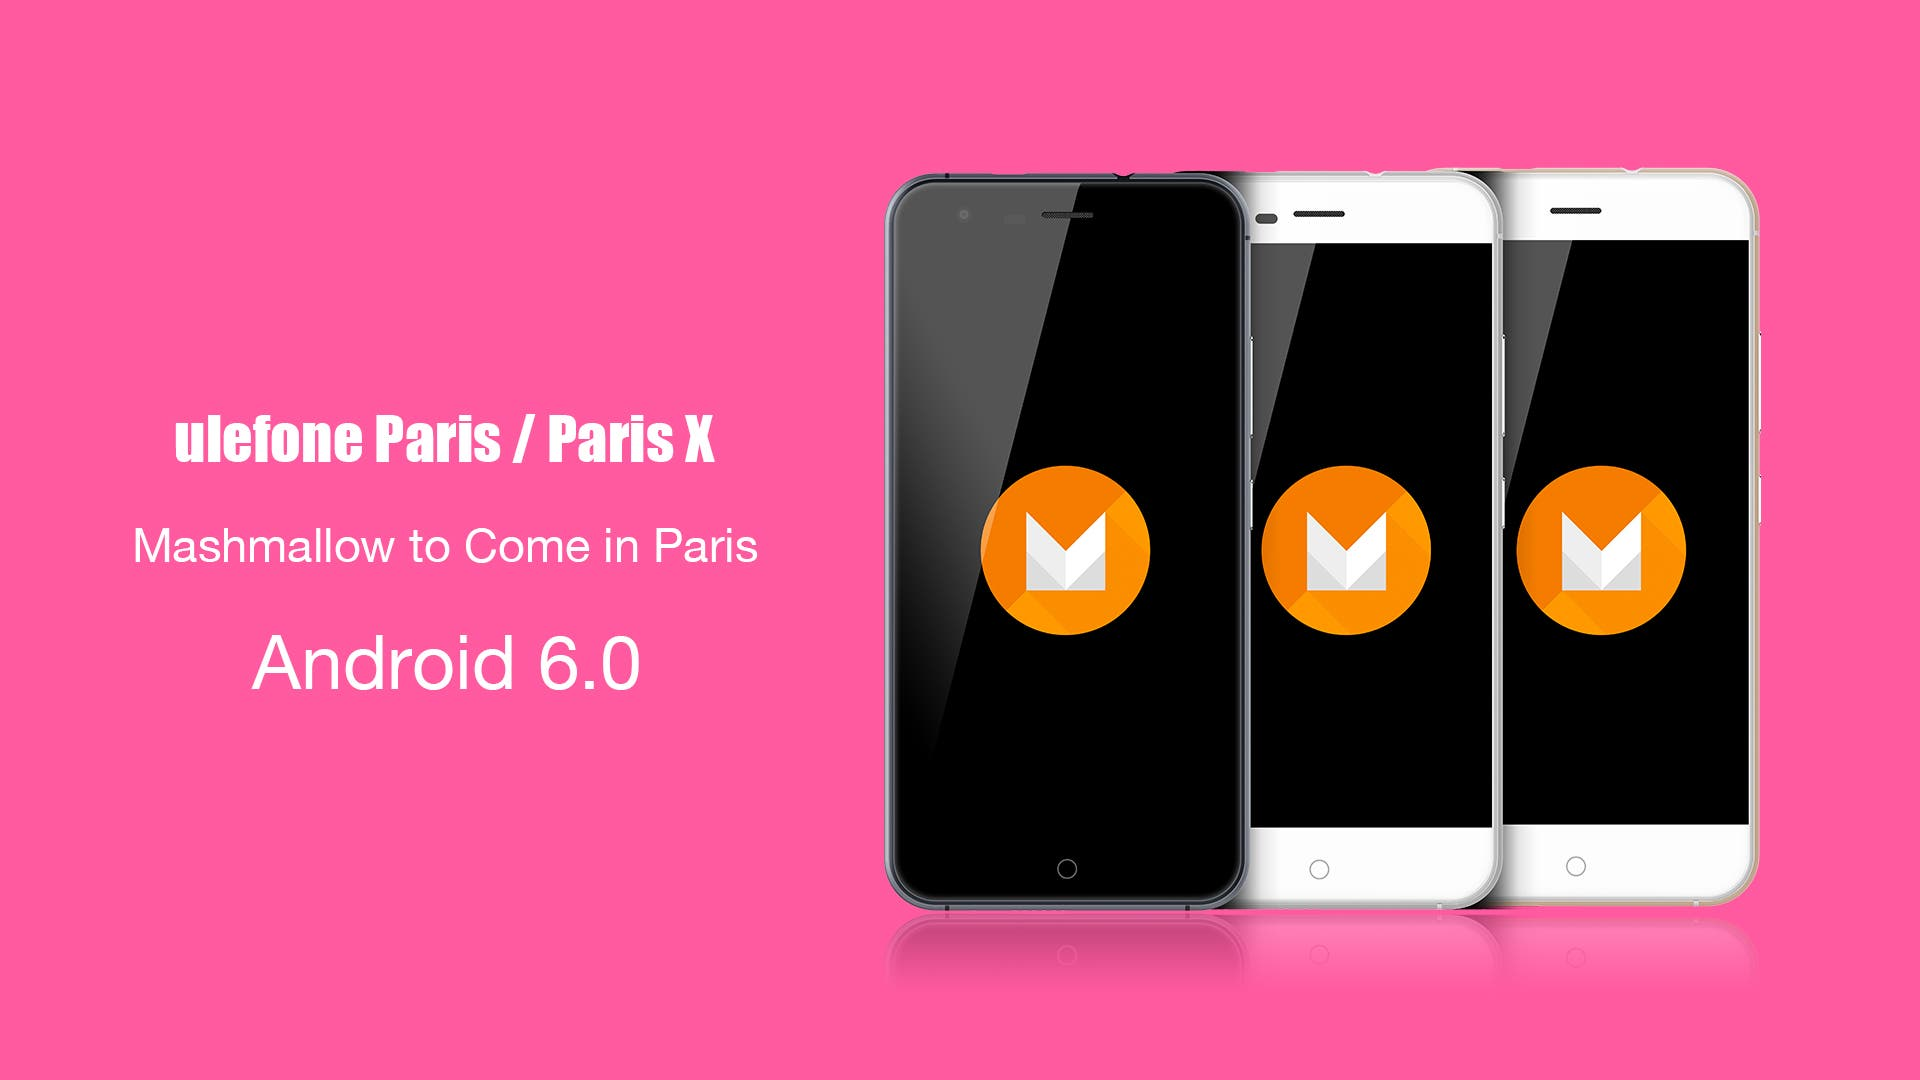 ulefone paris Android m updated